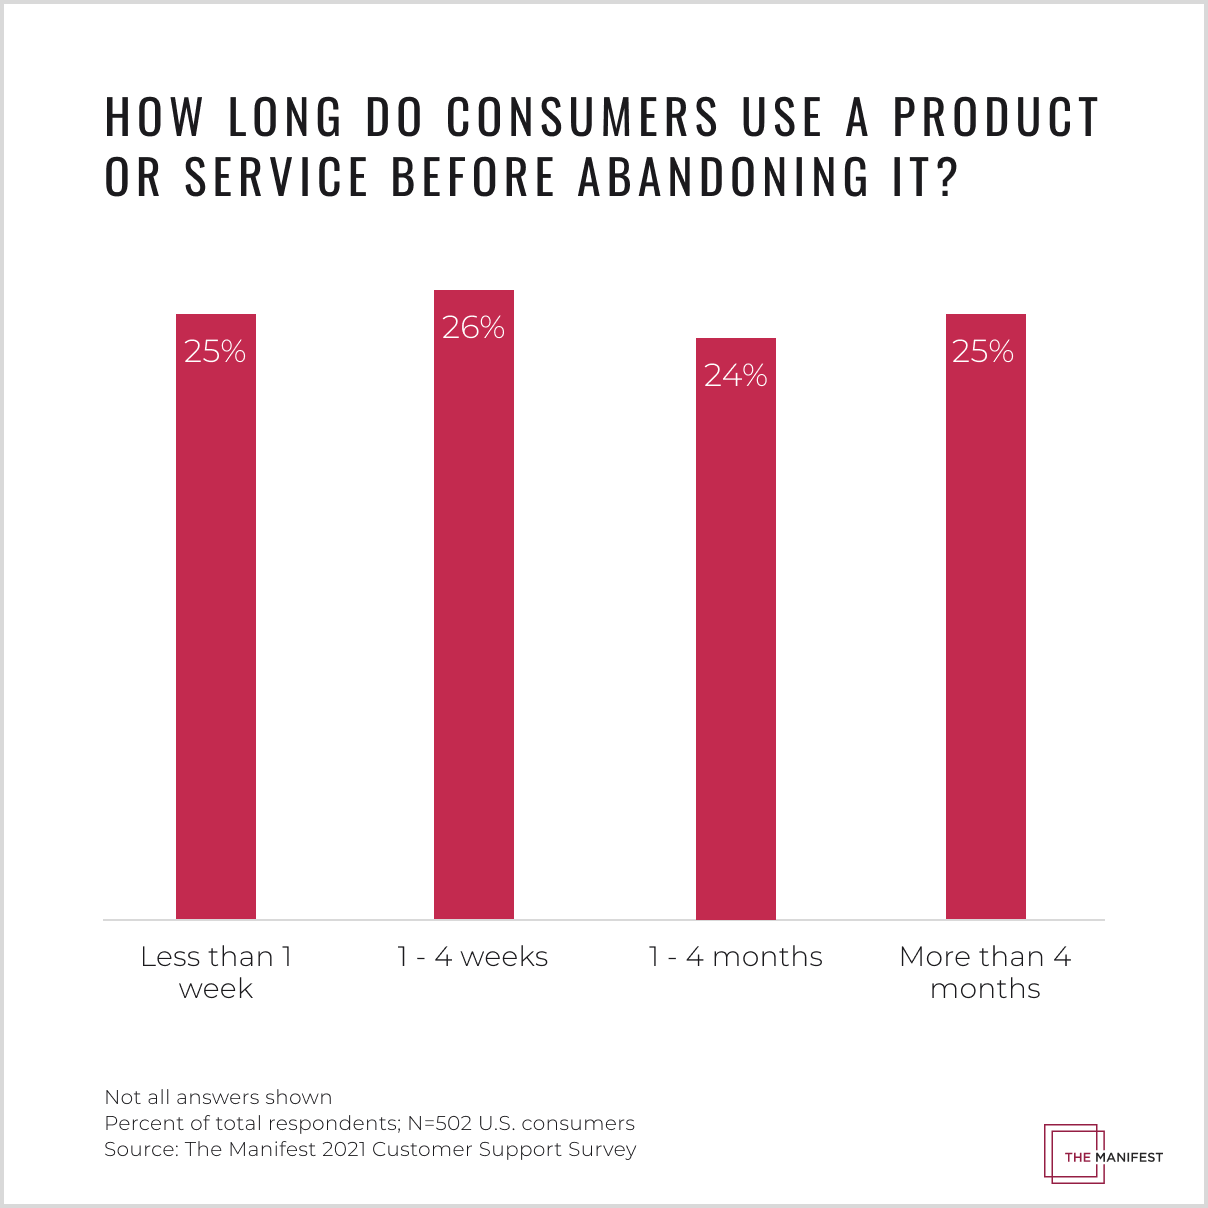 Consumers are nearly as likely to abandon a product or service early in their journeys as they are later in their journeys.